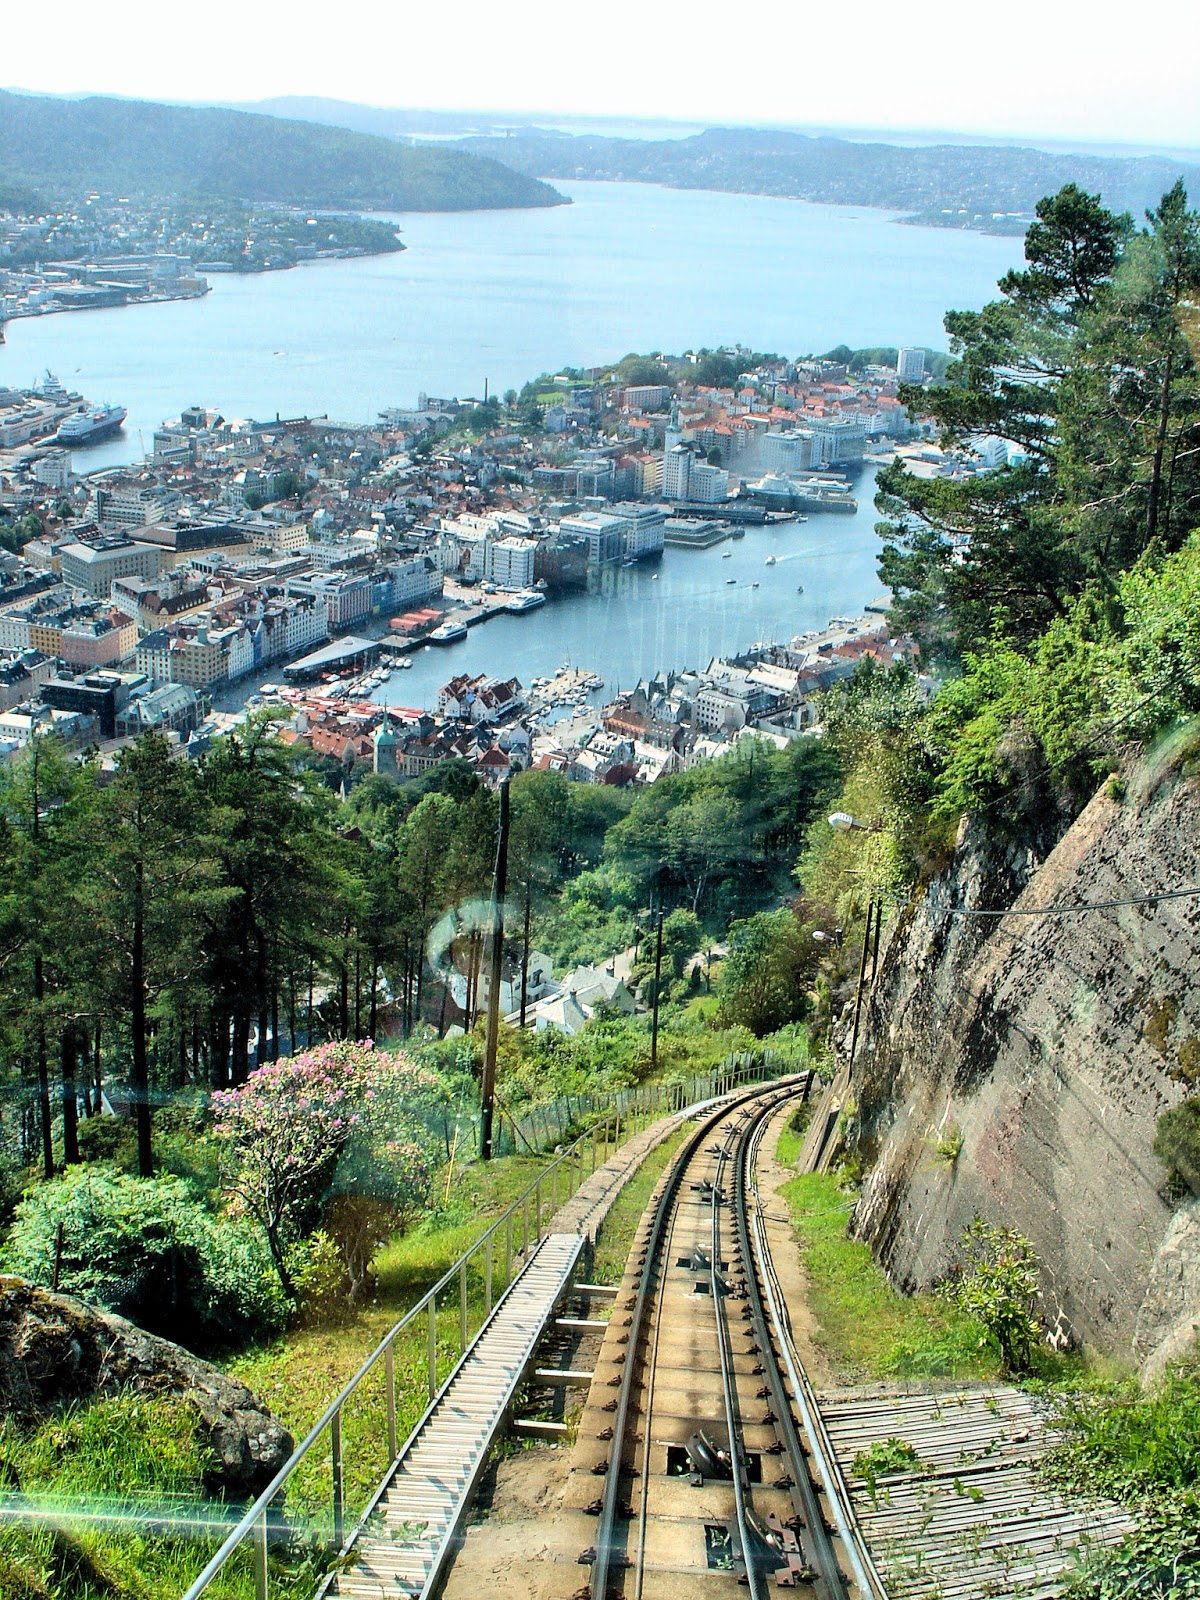 All aboard the Fløibanen funicular! To the top of Mt. Fløyen we go! Photo is the property of EuroTravelogue™. Unauthorized use is prohibited.